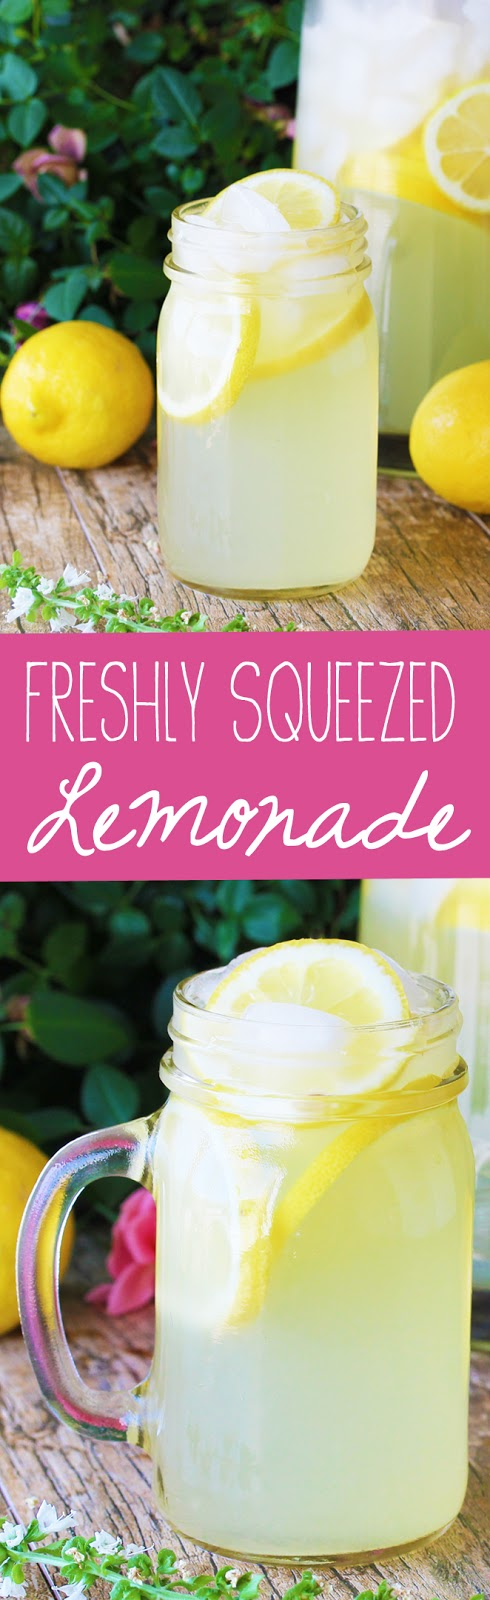 Learn how to make old fashioned, freshly squeeze homemade lemonade using real lemons. Quench your thirst this summer with your own easy homemade lemonade!